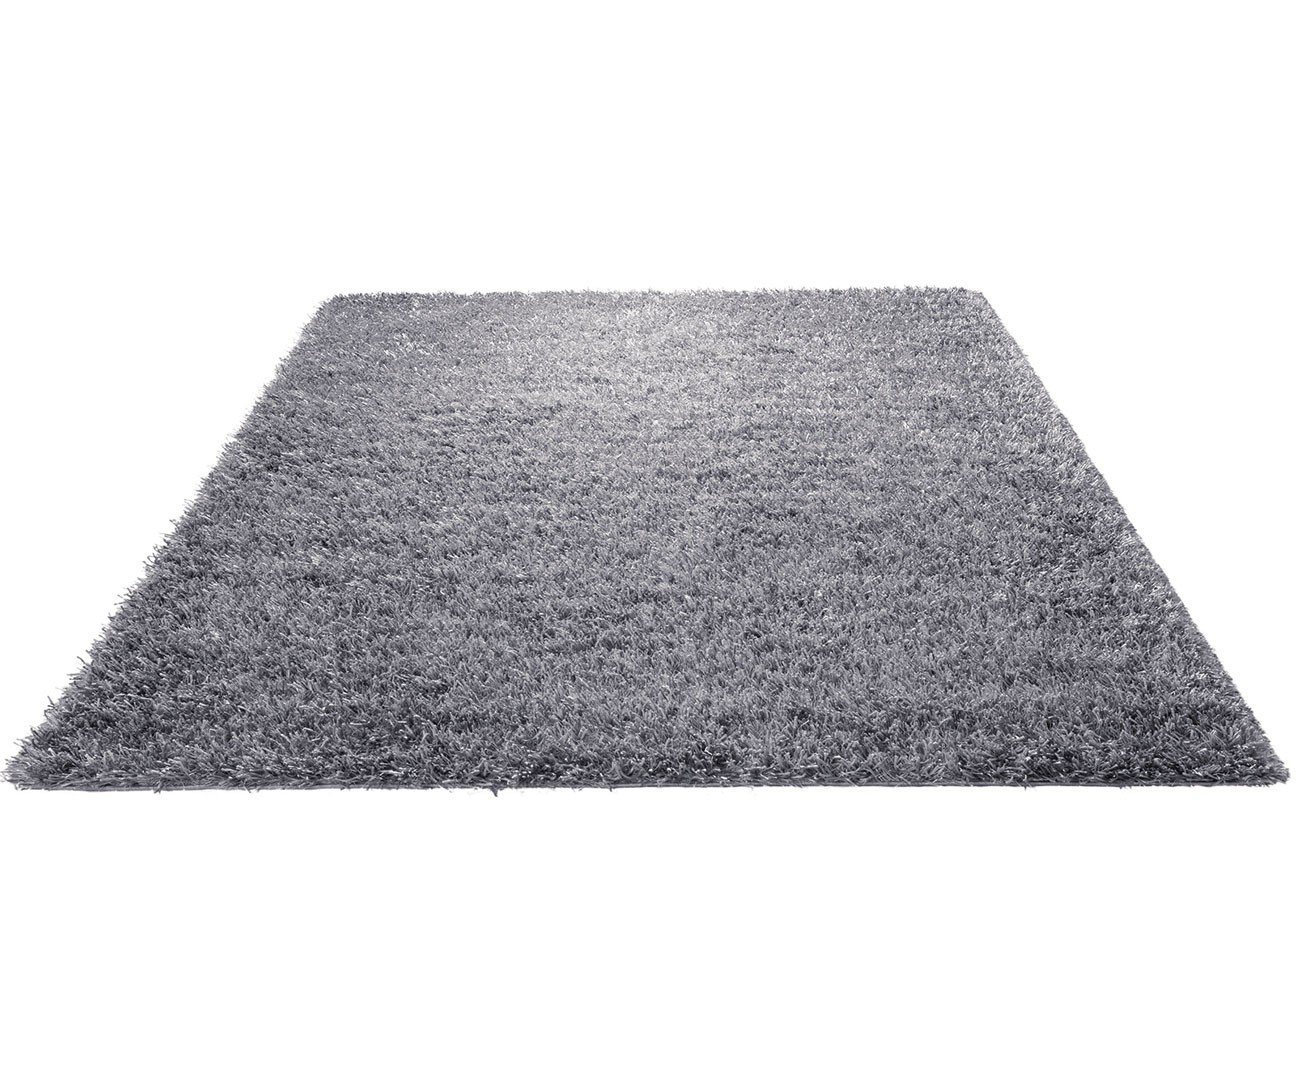 ikea tapis shaggy nrum rug high pile ikea with ikea tapis shaggy herrup matto matala nukka. Black Bedroom Furniture Sets. Home Design Ideas